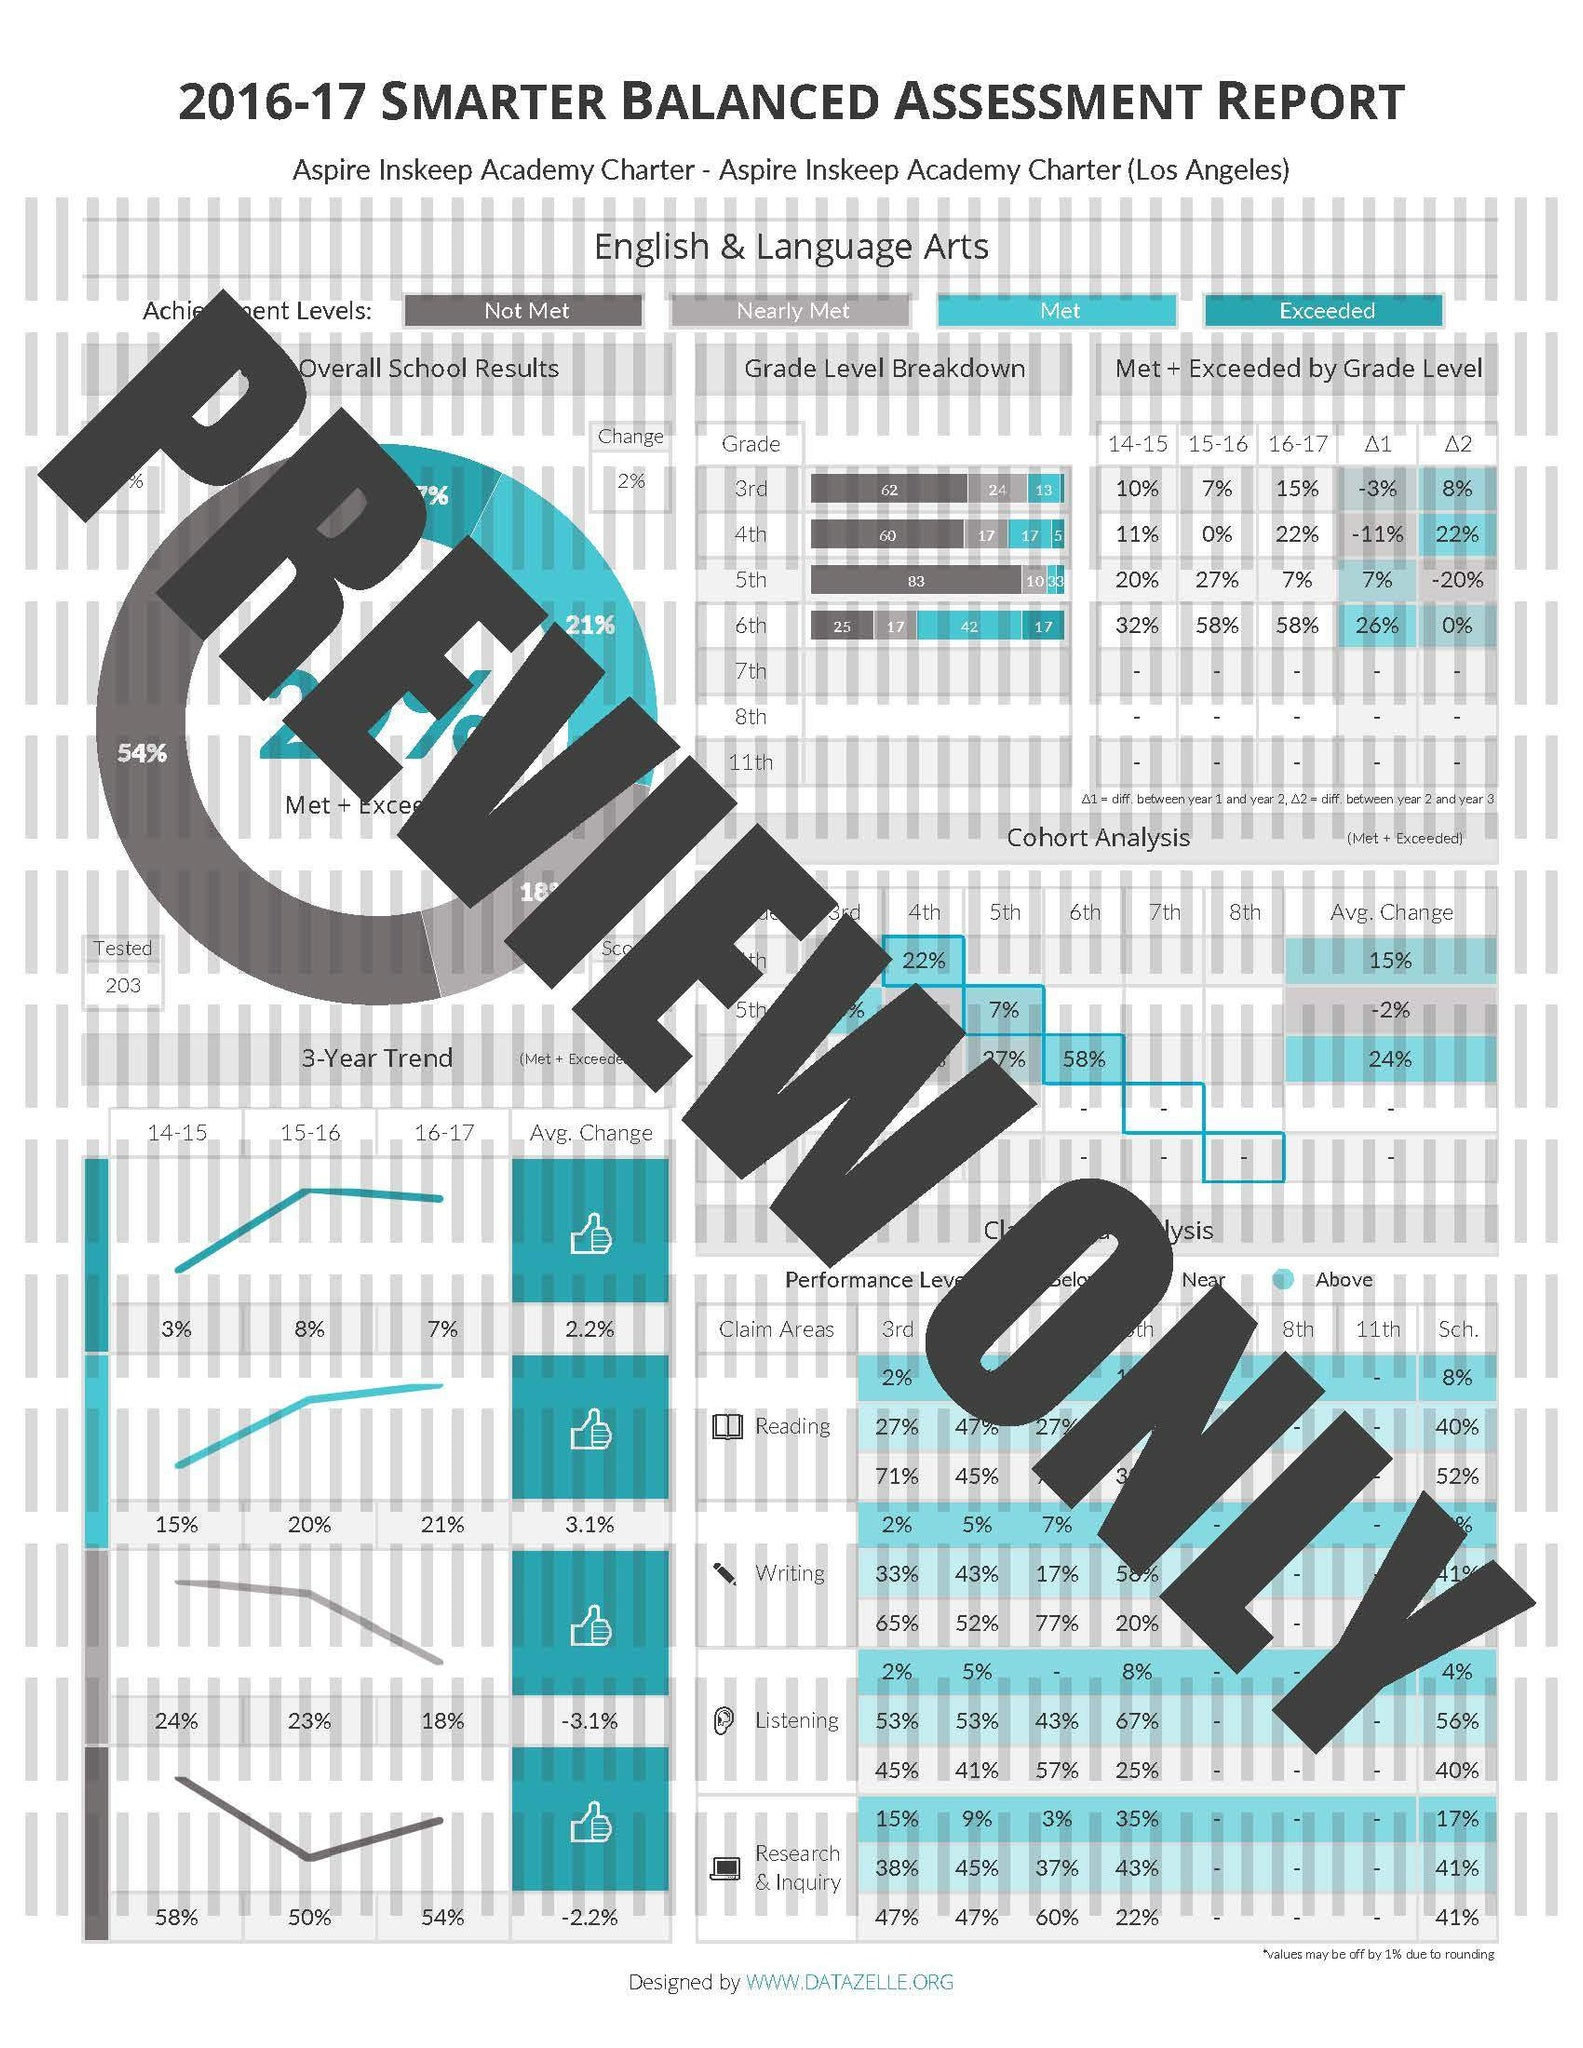 2016-17 Smarter Balanced Assessment Report - Aspire Inskeep Academy Charter - Aspire Inskeep Academy Charter (Los Angeles)